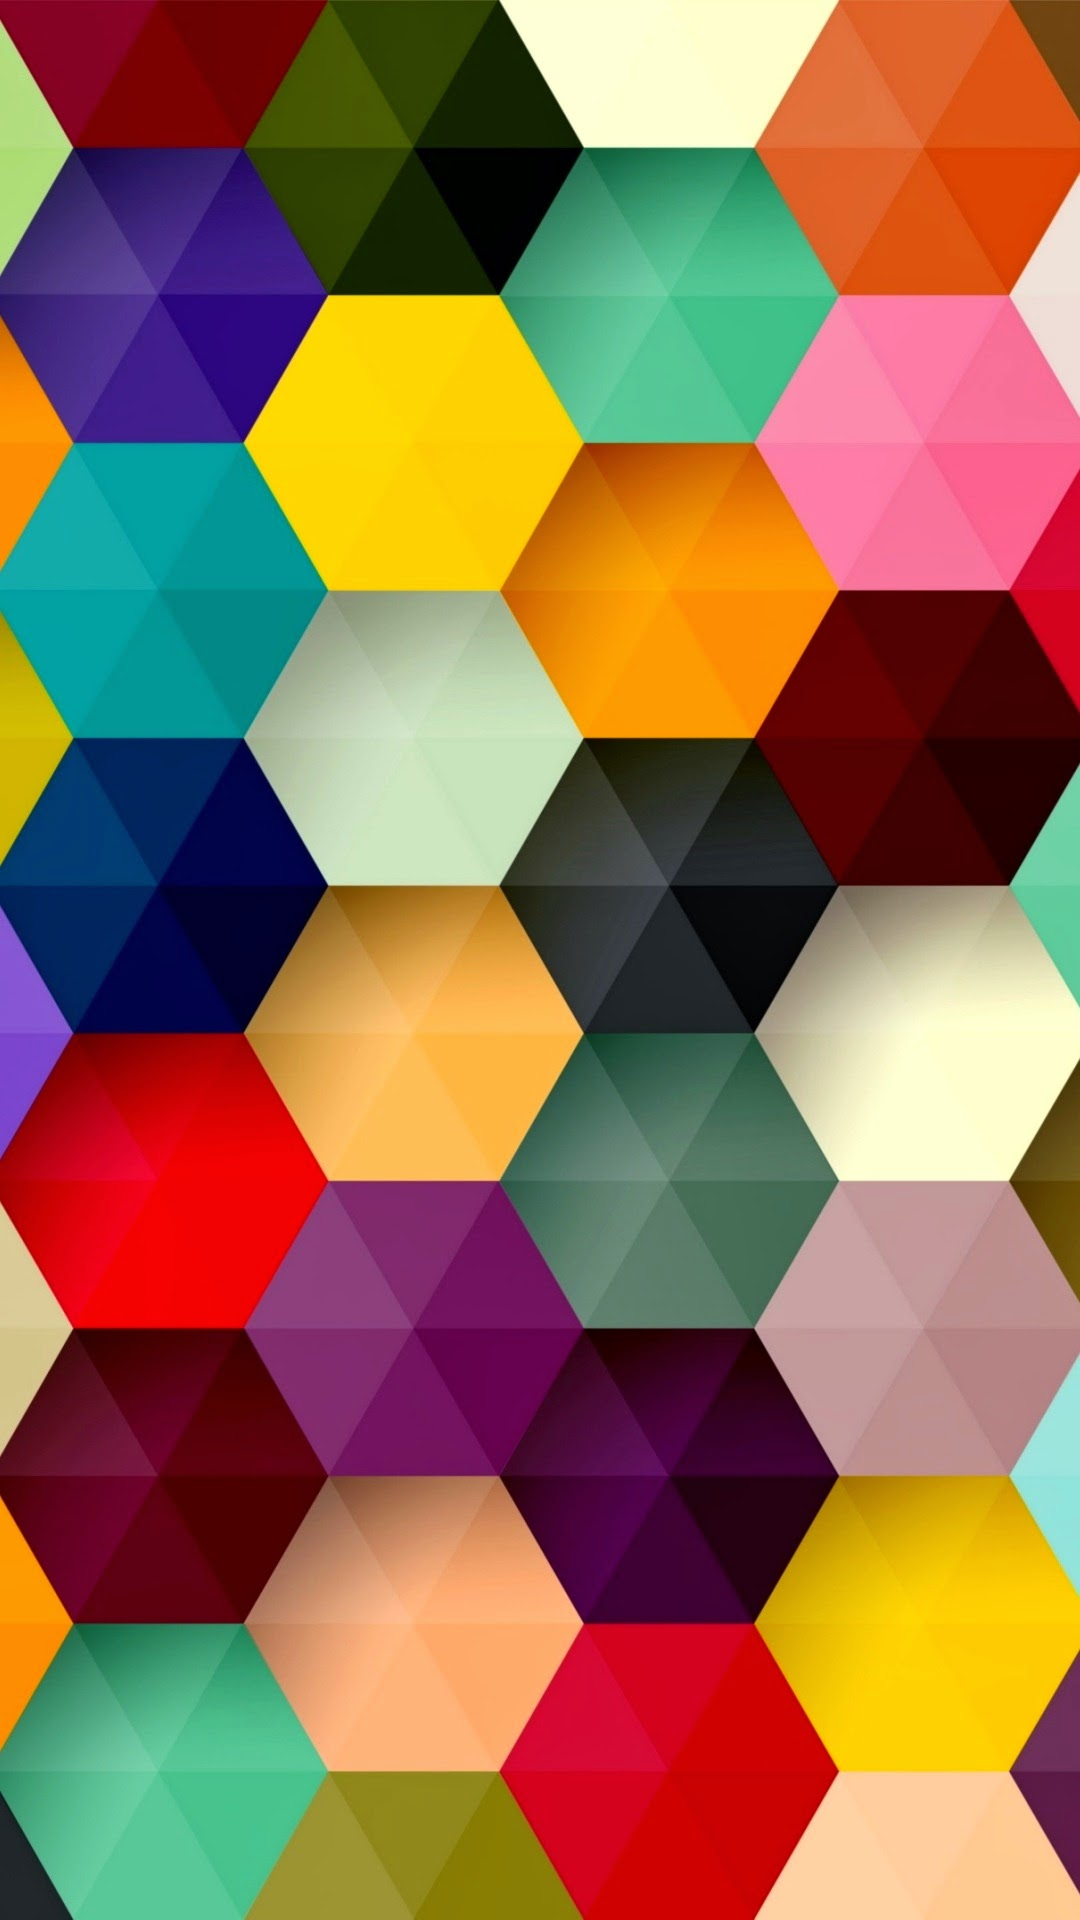 hexagon colorful abstract android wallpaper background